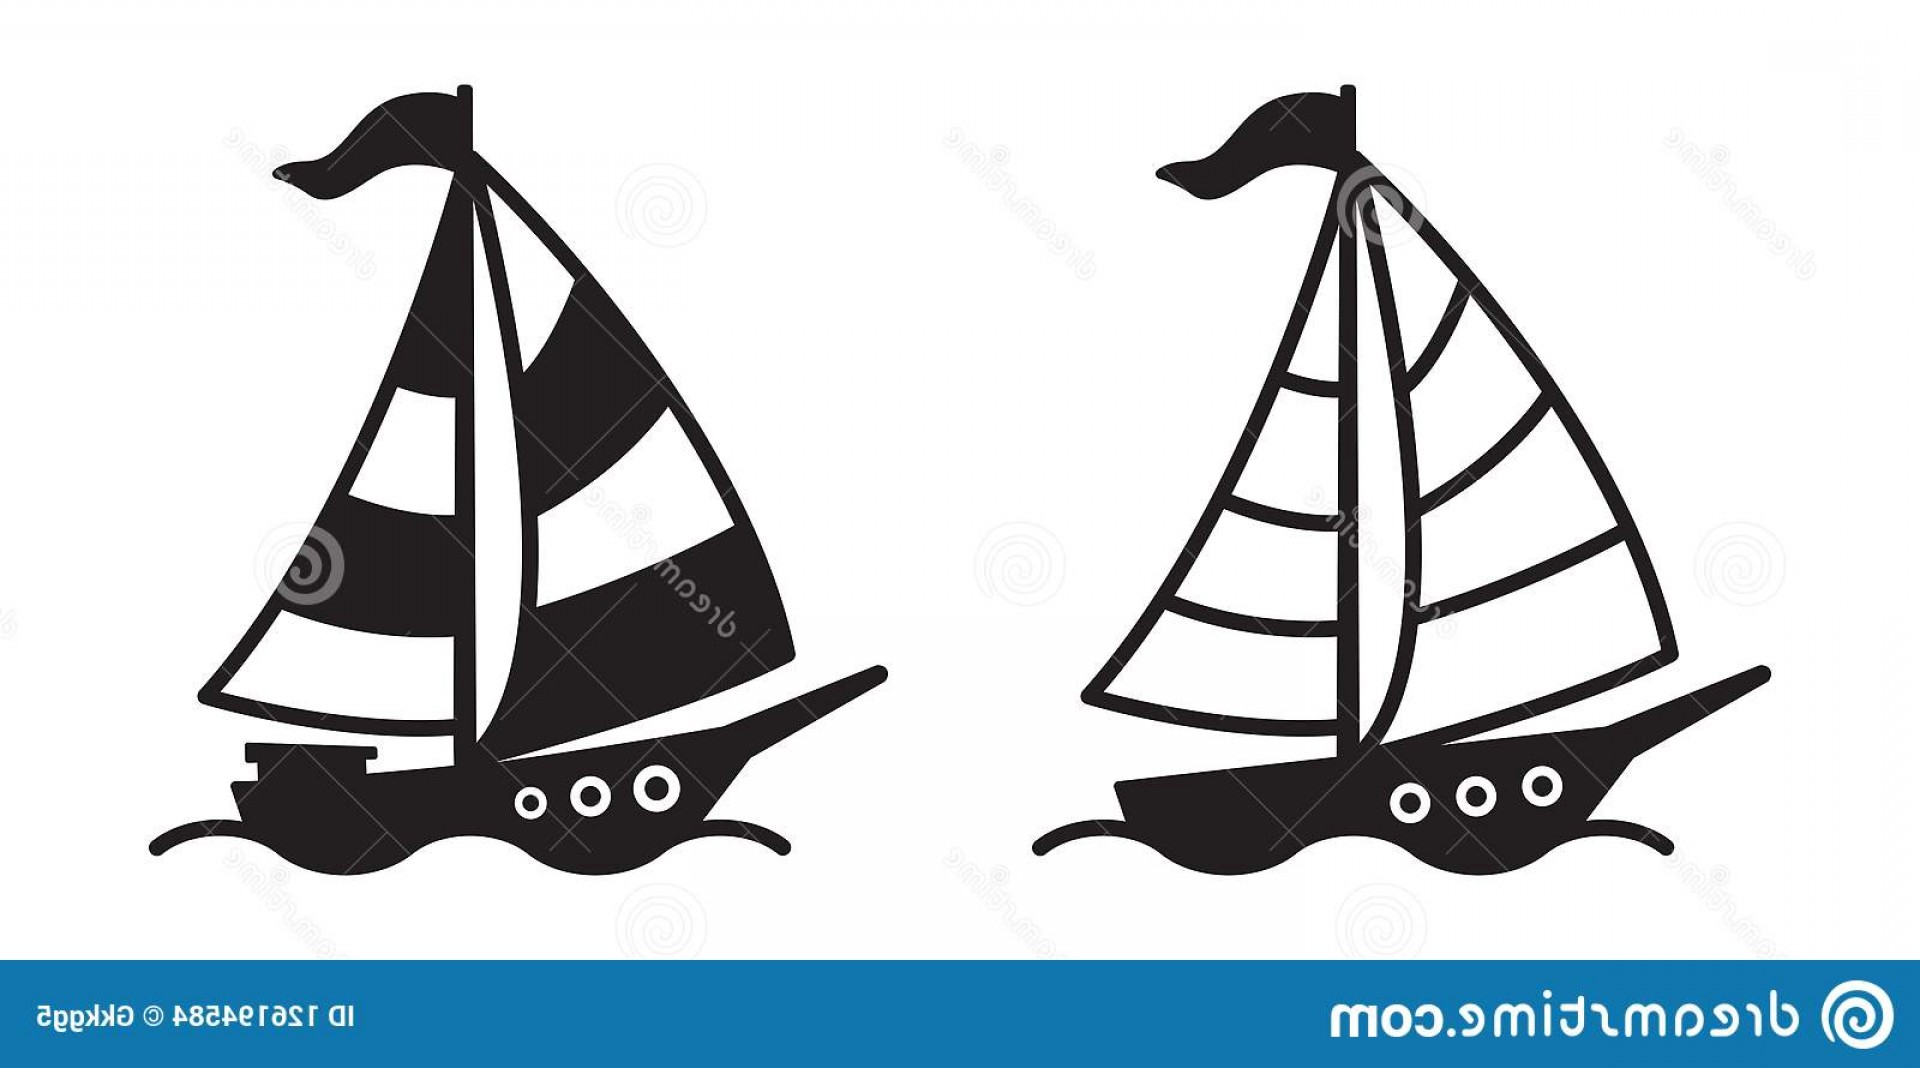 Boat Vector Art Graphics: Boat Ship Vector Logo Icon Symbol Pirate Yacht Sailboat Illustration Graphic Cartoon Image